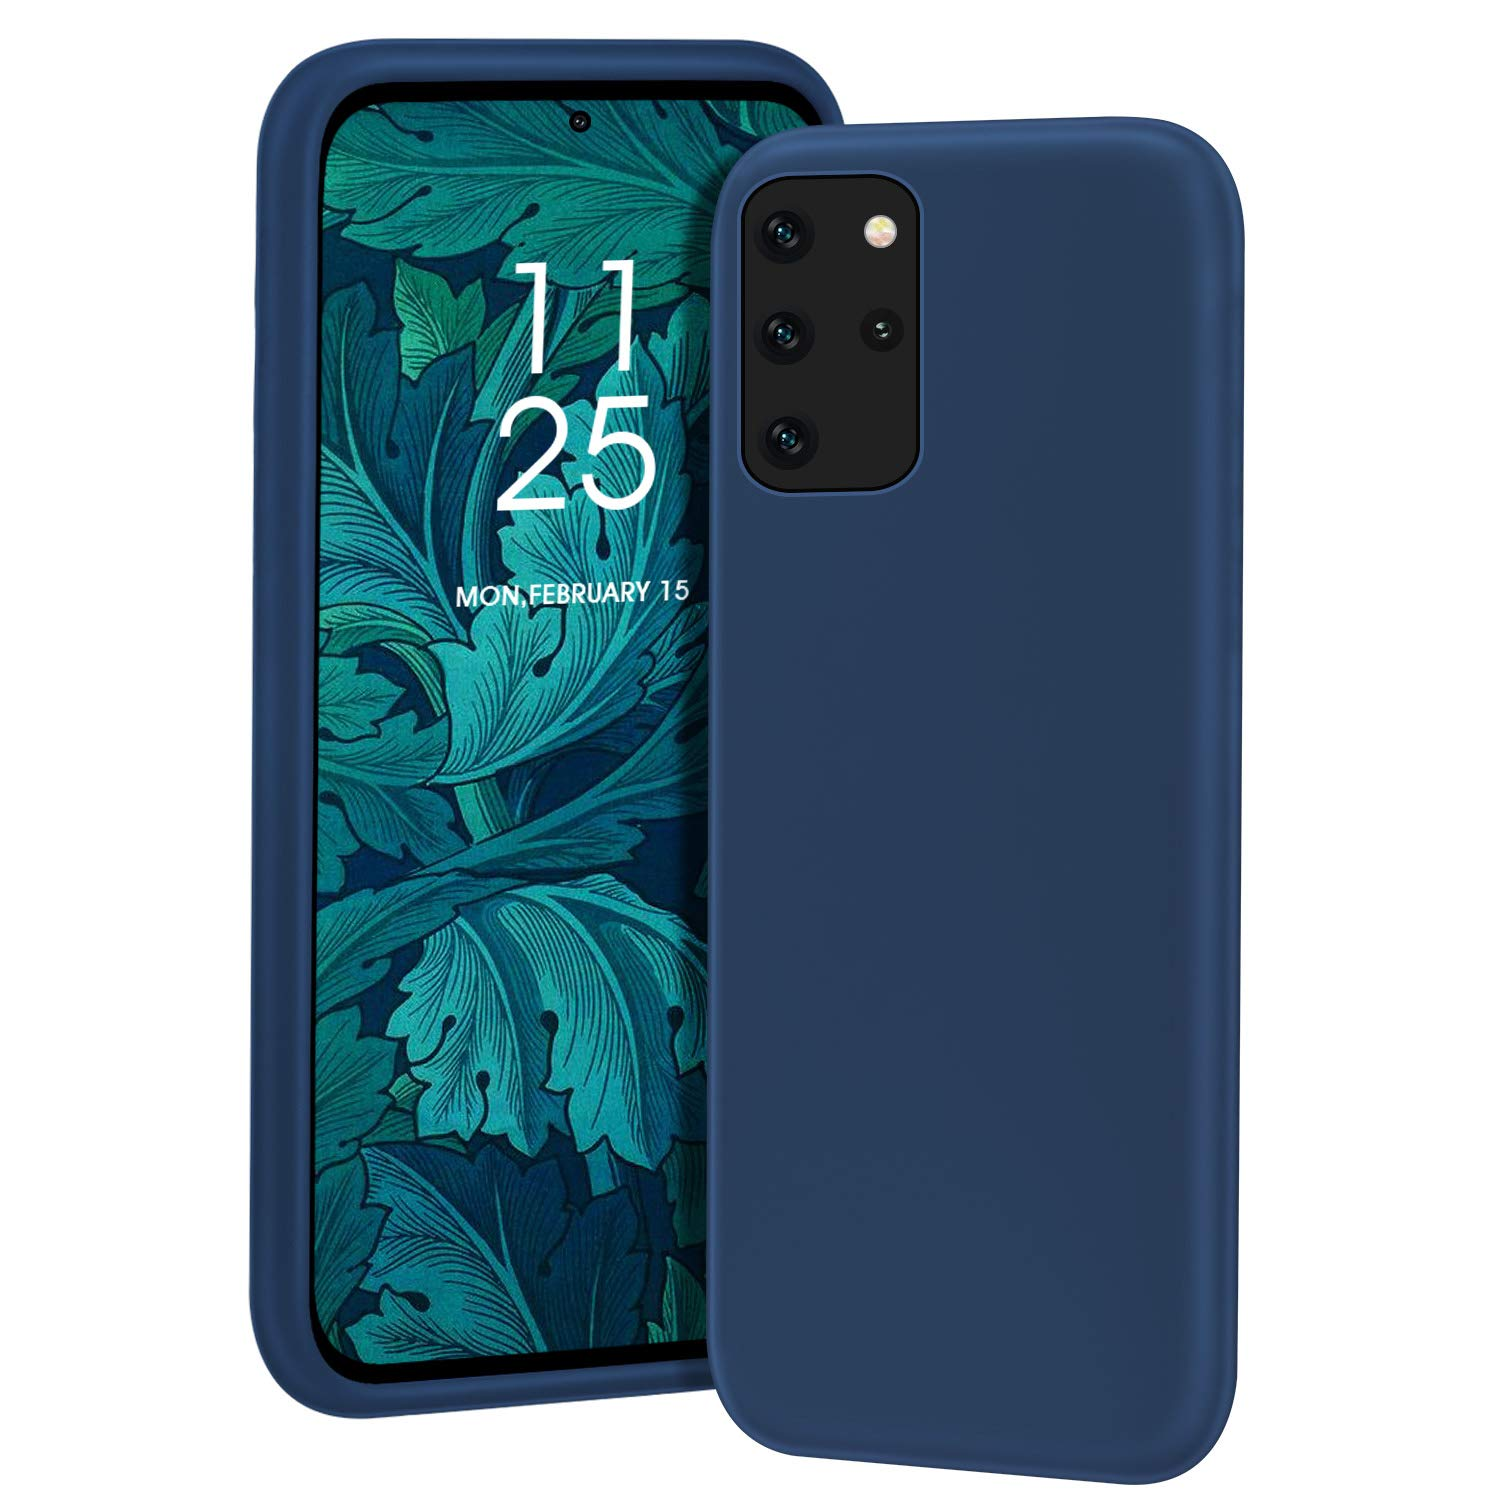 MILPROX Galaxy S20 Plus Case, Liquid Silicone Gel Rubber Shockproof Slim Shell with Soft Microfiber Cloth Lining Cushion Cover for Galaxy S20 Plus Phone 6.7 inches(2020)- Blue Horizon